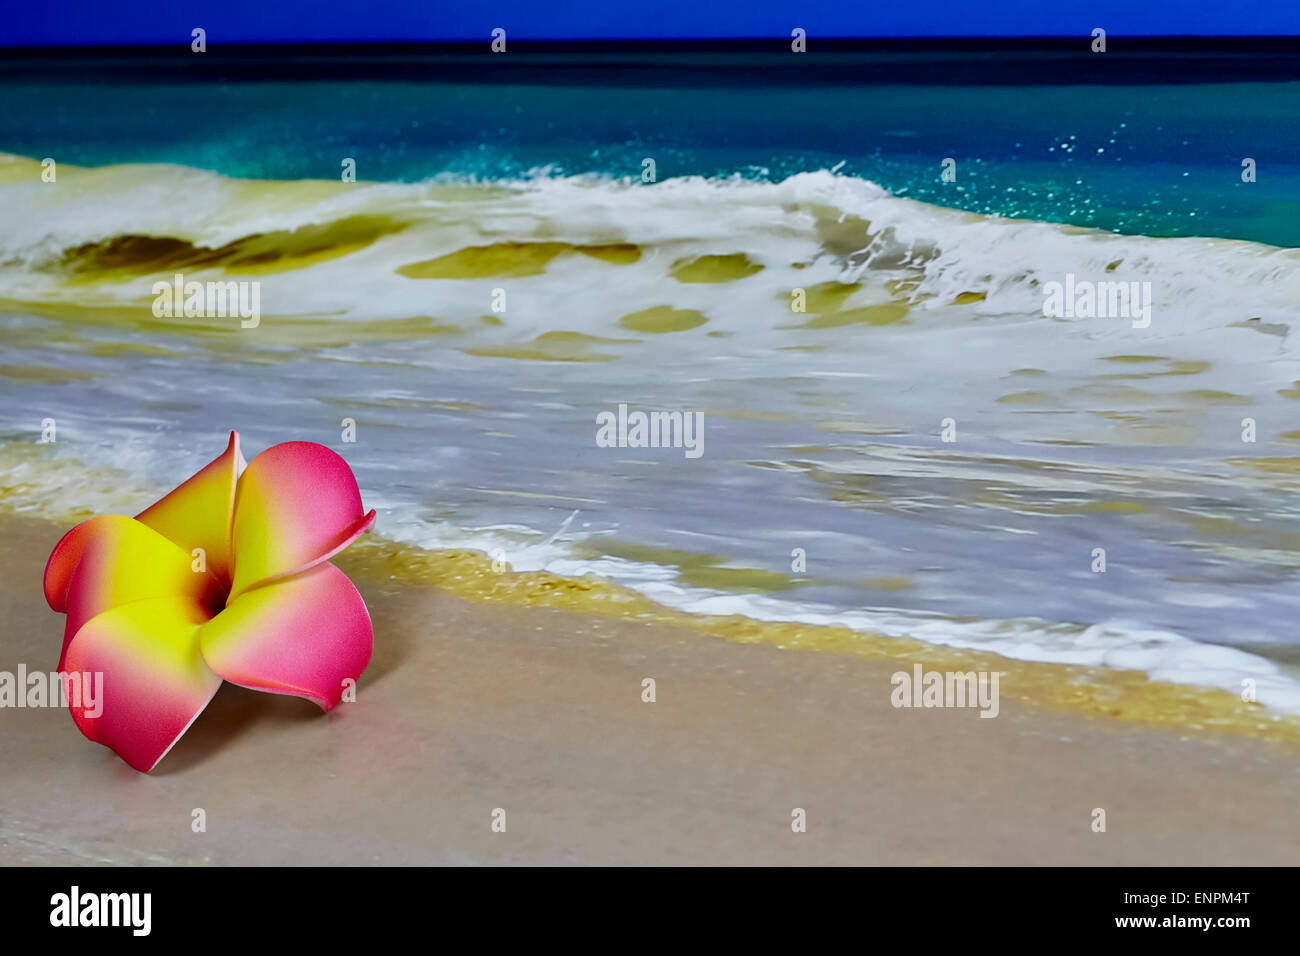 Beach ocean flower plumeria pink stock photos beach ocean flower a pink and yellow hawaiian flower plumeria laying on sand with waves in background izmirmasajfo